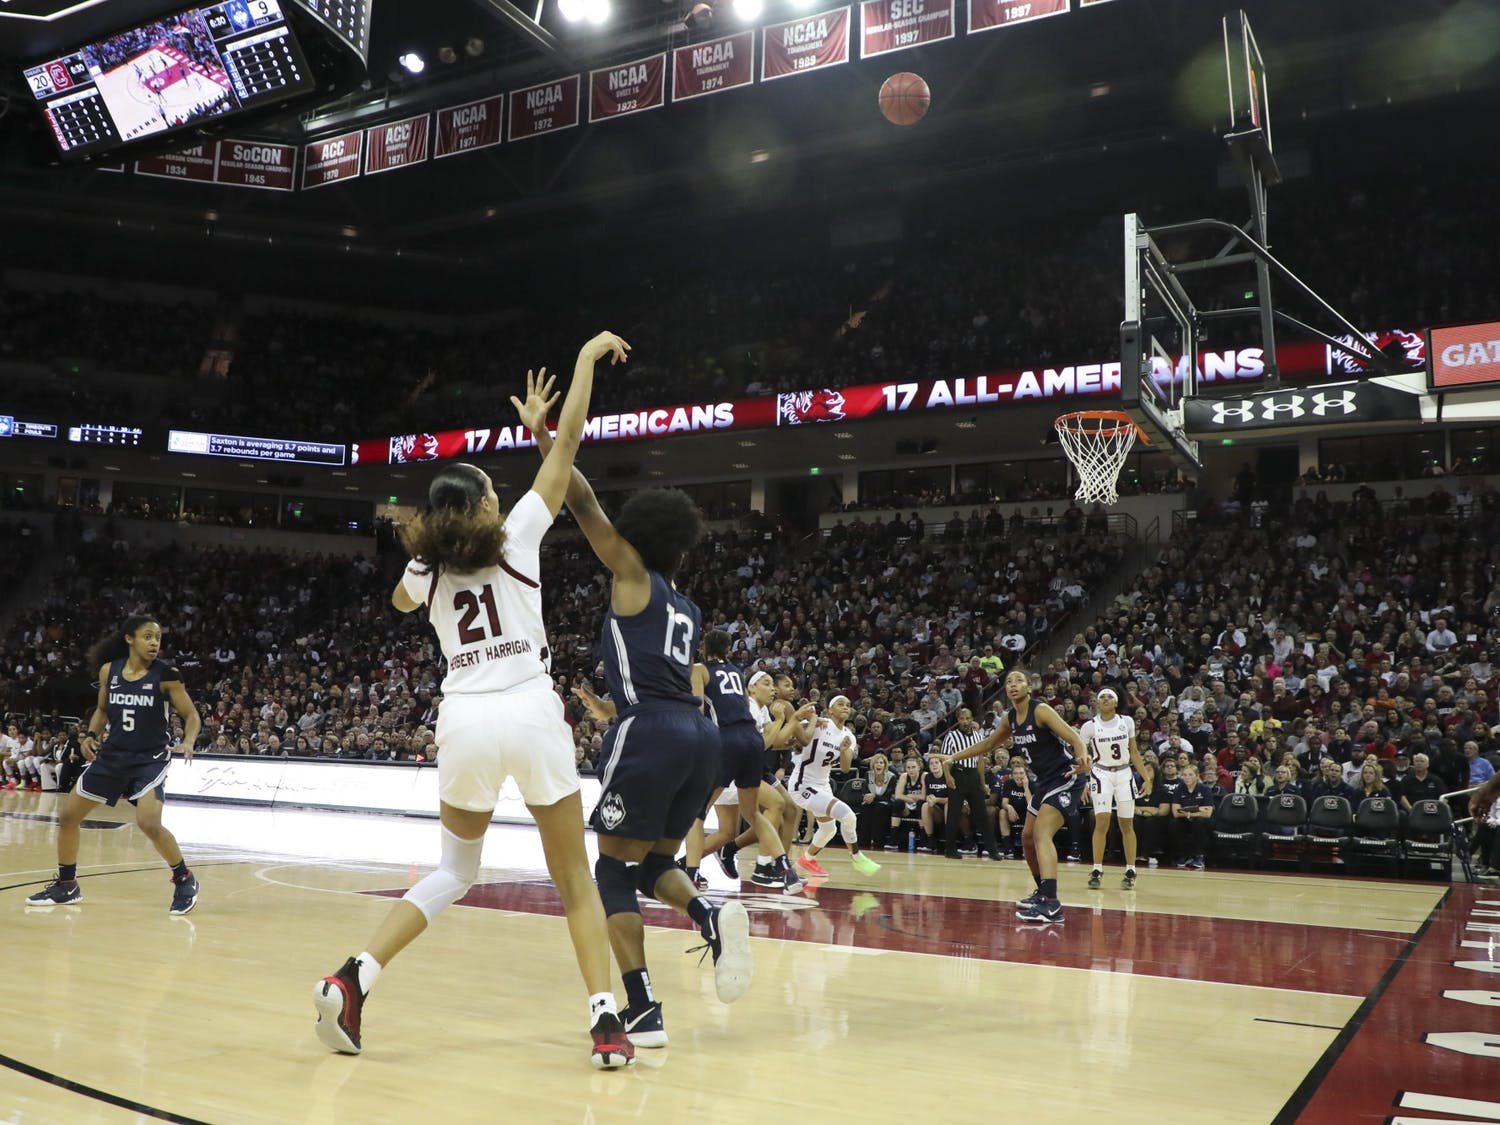 Senior forward Mikiah Herbert Harrigan shoots the ball in a scoring attempt. Harrigan scored 10 points, seven rebounds and two assists against the Huskies.